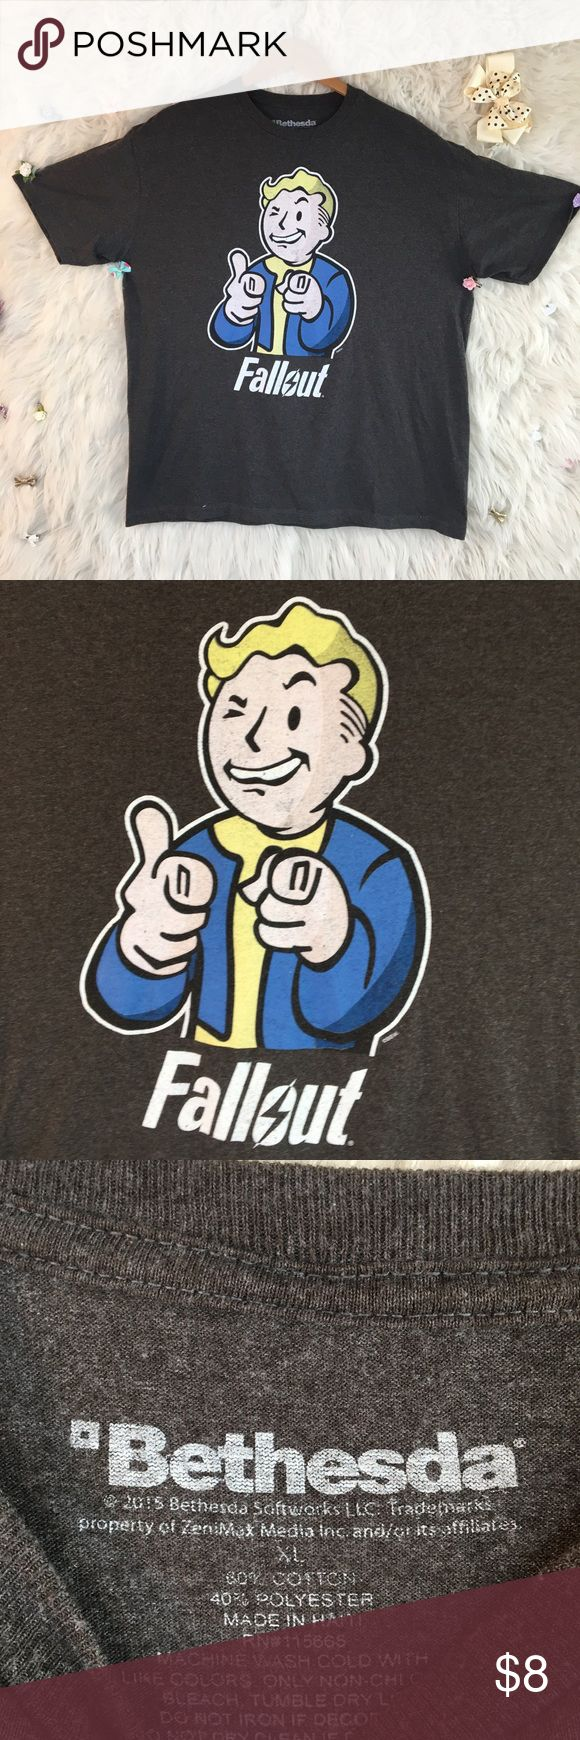 FALLOUT PIP BOY T SHIRT GRAY WITH BLUE AND WHITE Great gift for your gamer guy. Logo is cracking a bit but all in all good used condition . ⬇️⬇️⬇️  PLEASE READ  Any clips/ accessories you see in the photos aren't included UNLESS otherwise stated.   If you aren't familiar with a particular brands sizing and I did not include a size chart, comment below and I'll gladly provide info. bethesda Shirts Tees - Short Sleeve